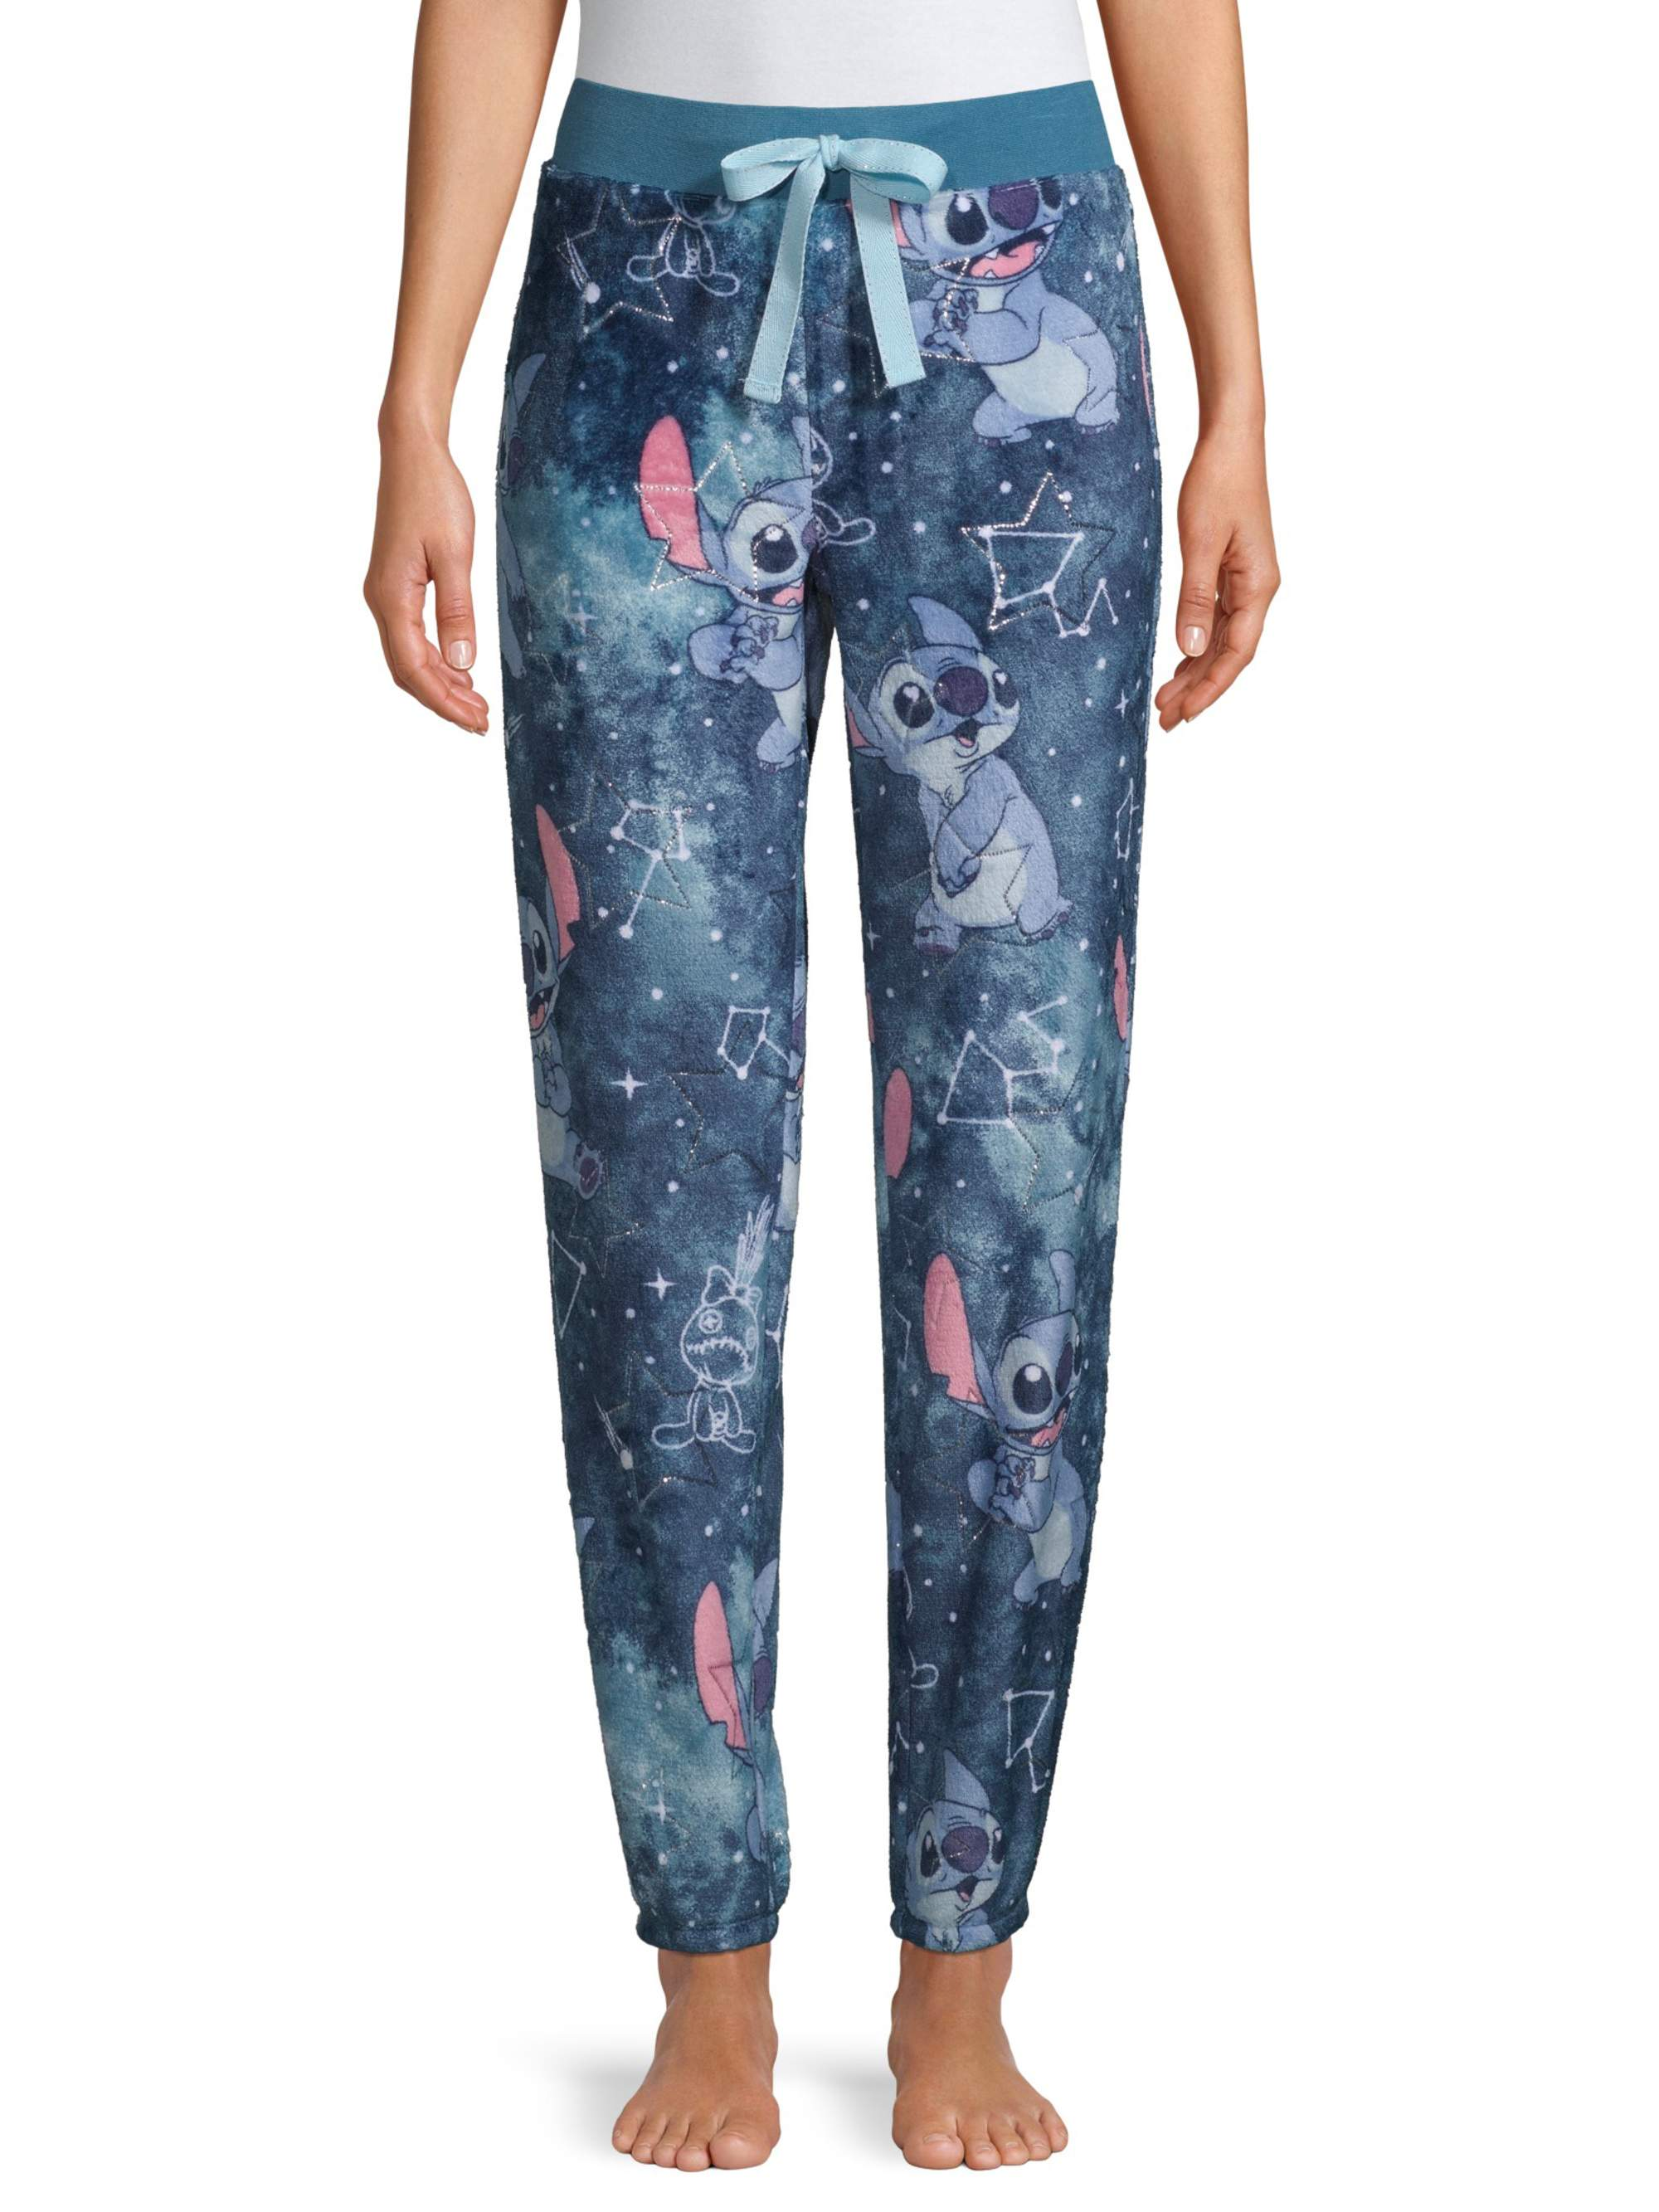 Disney Stitch Lounge Pants for Women